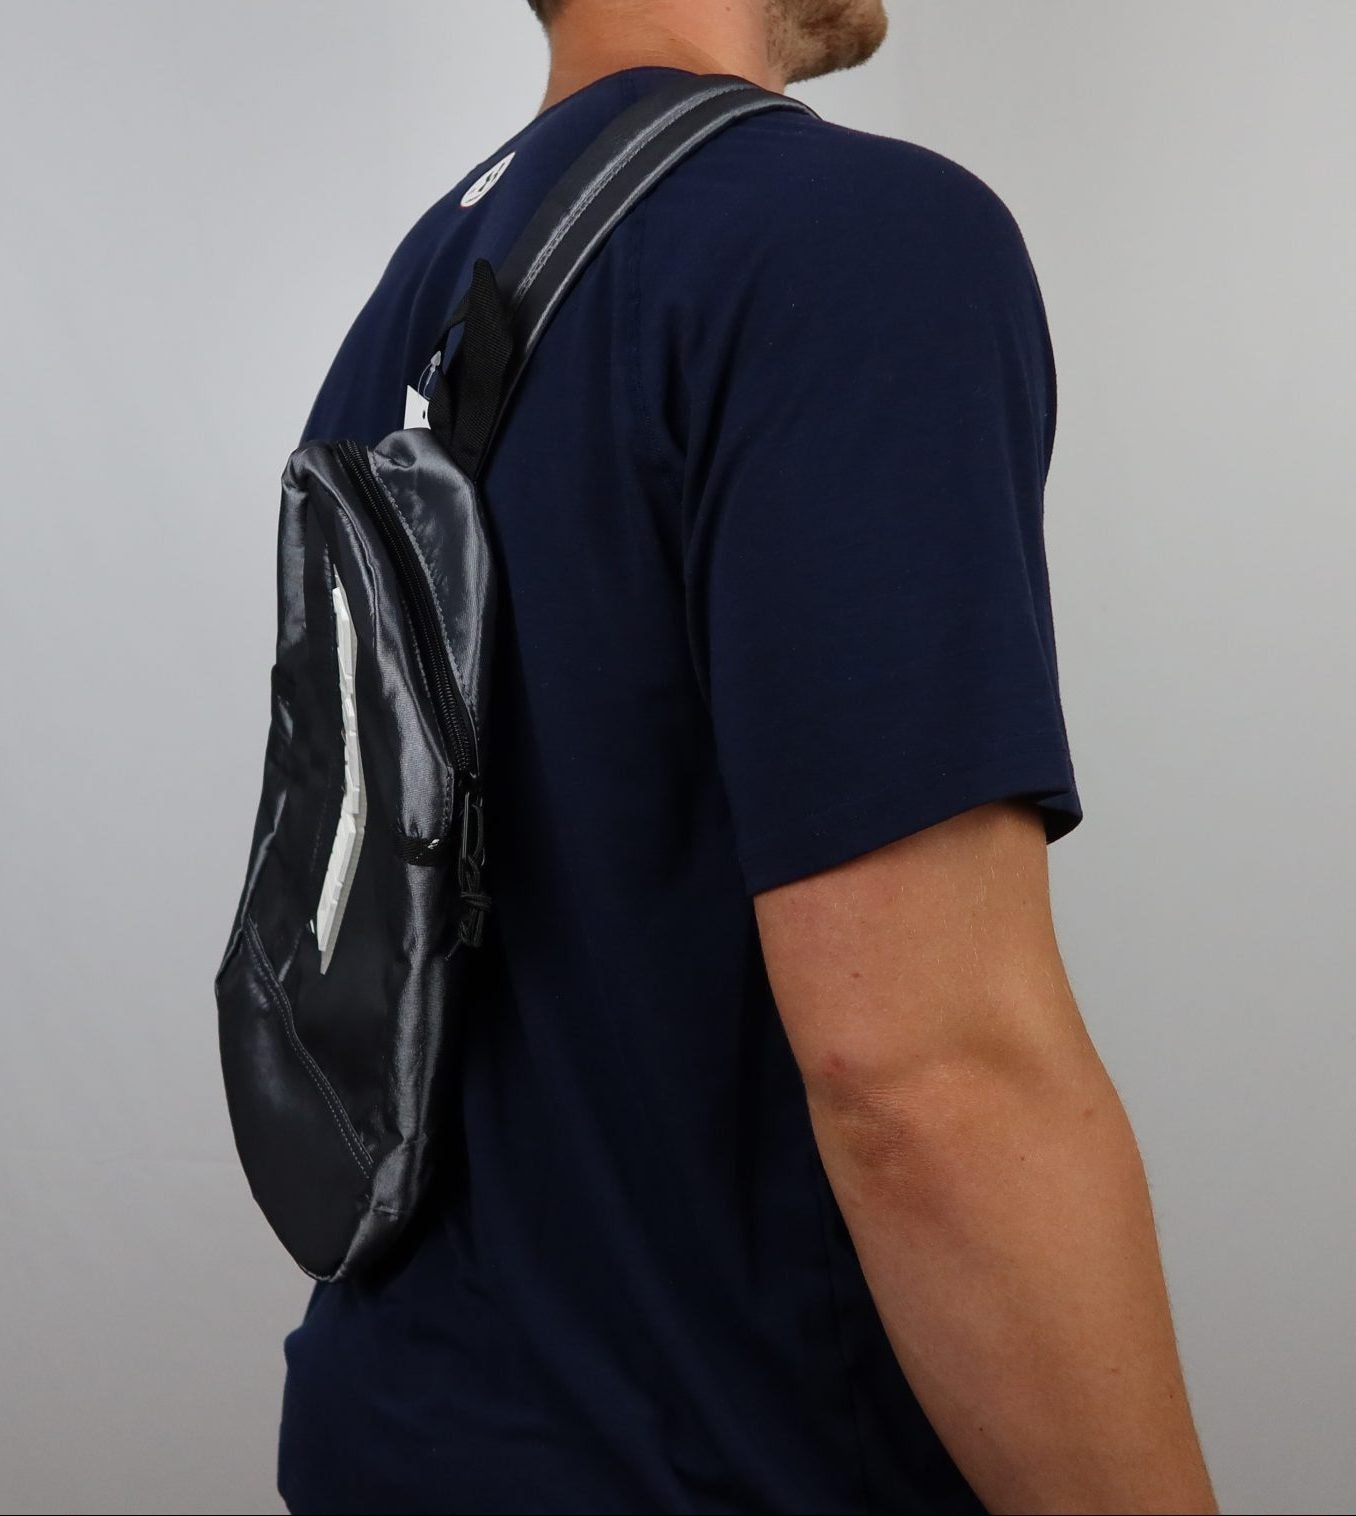 Black pyramid gray one strap bag